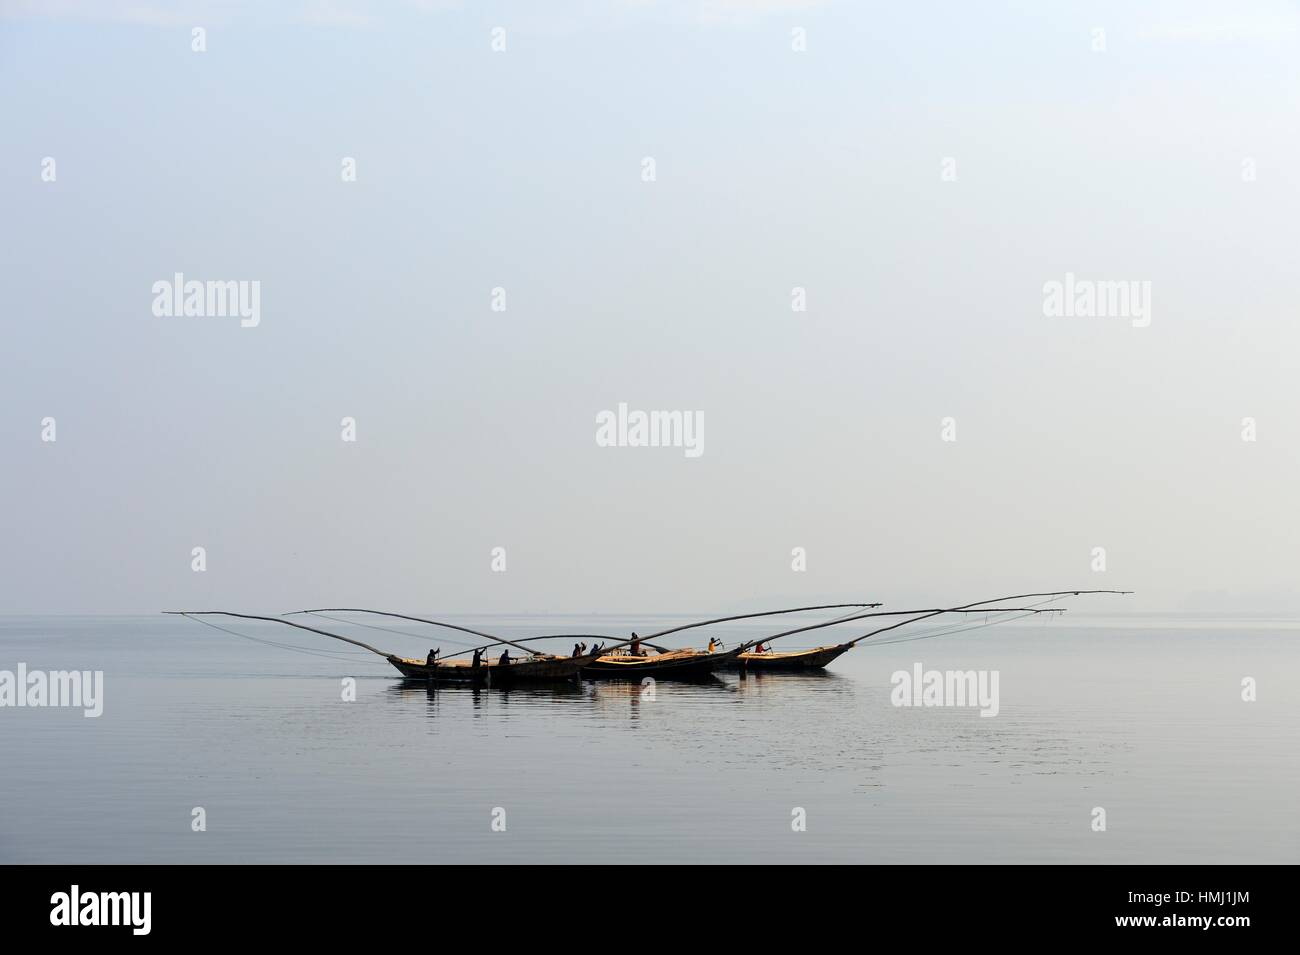 Fishermen in their boats on Lake Kivu ,Democratic Republic of Congo, Africa. - Stock Image